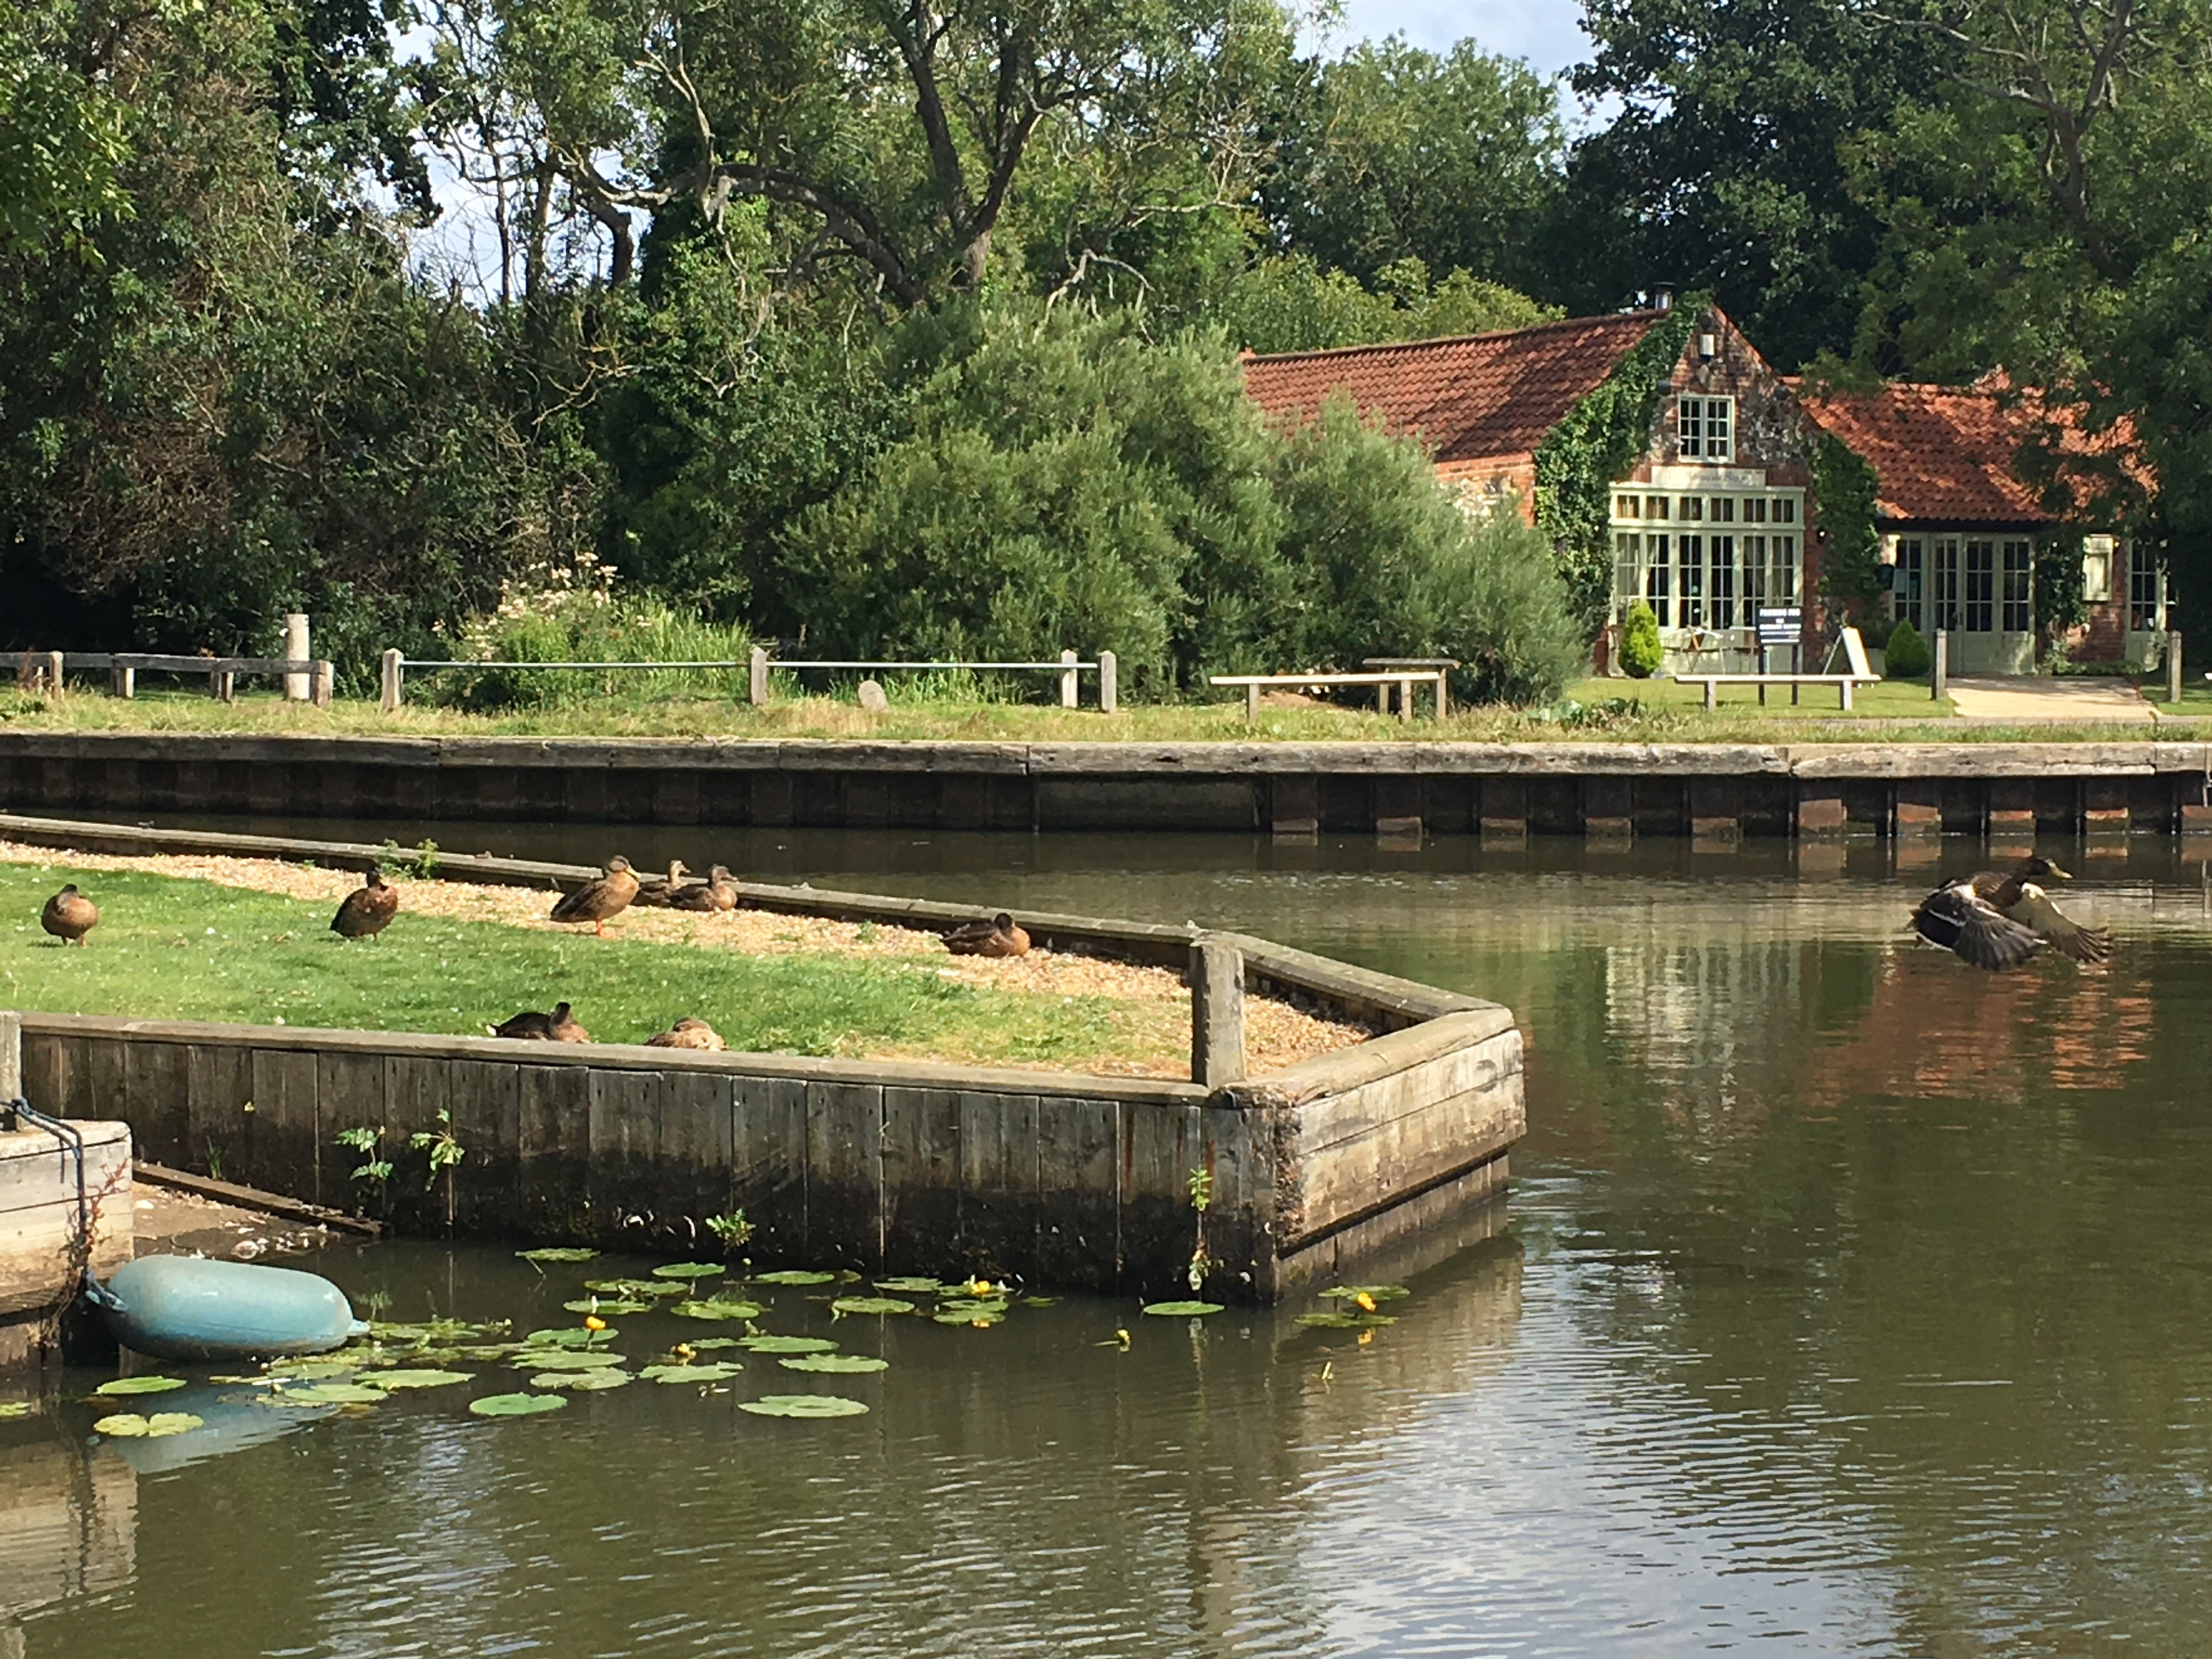 Ducks on the staithe